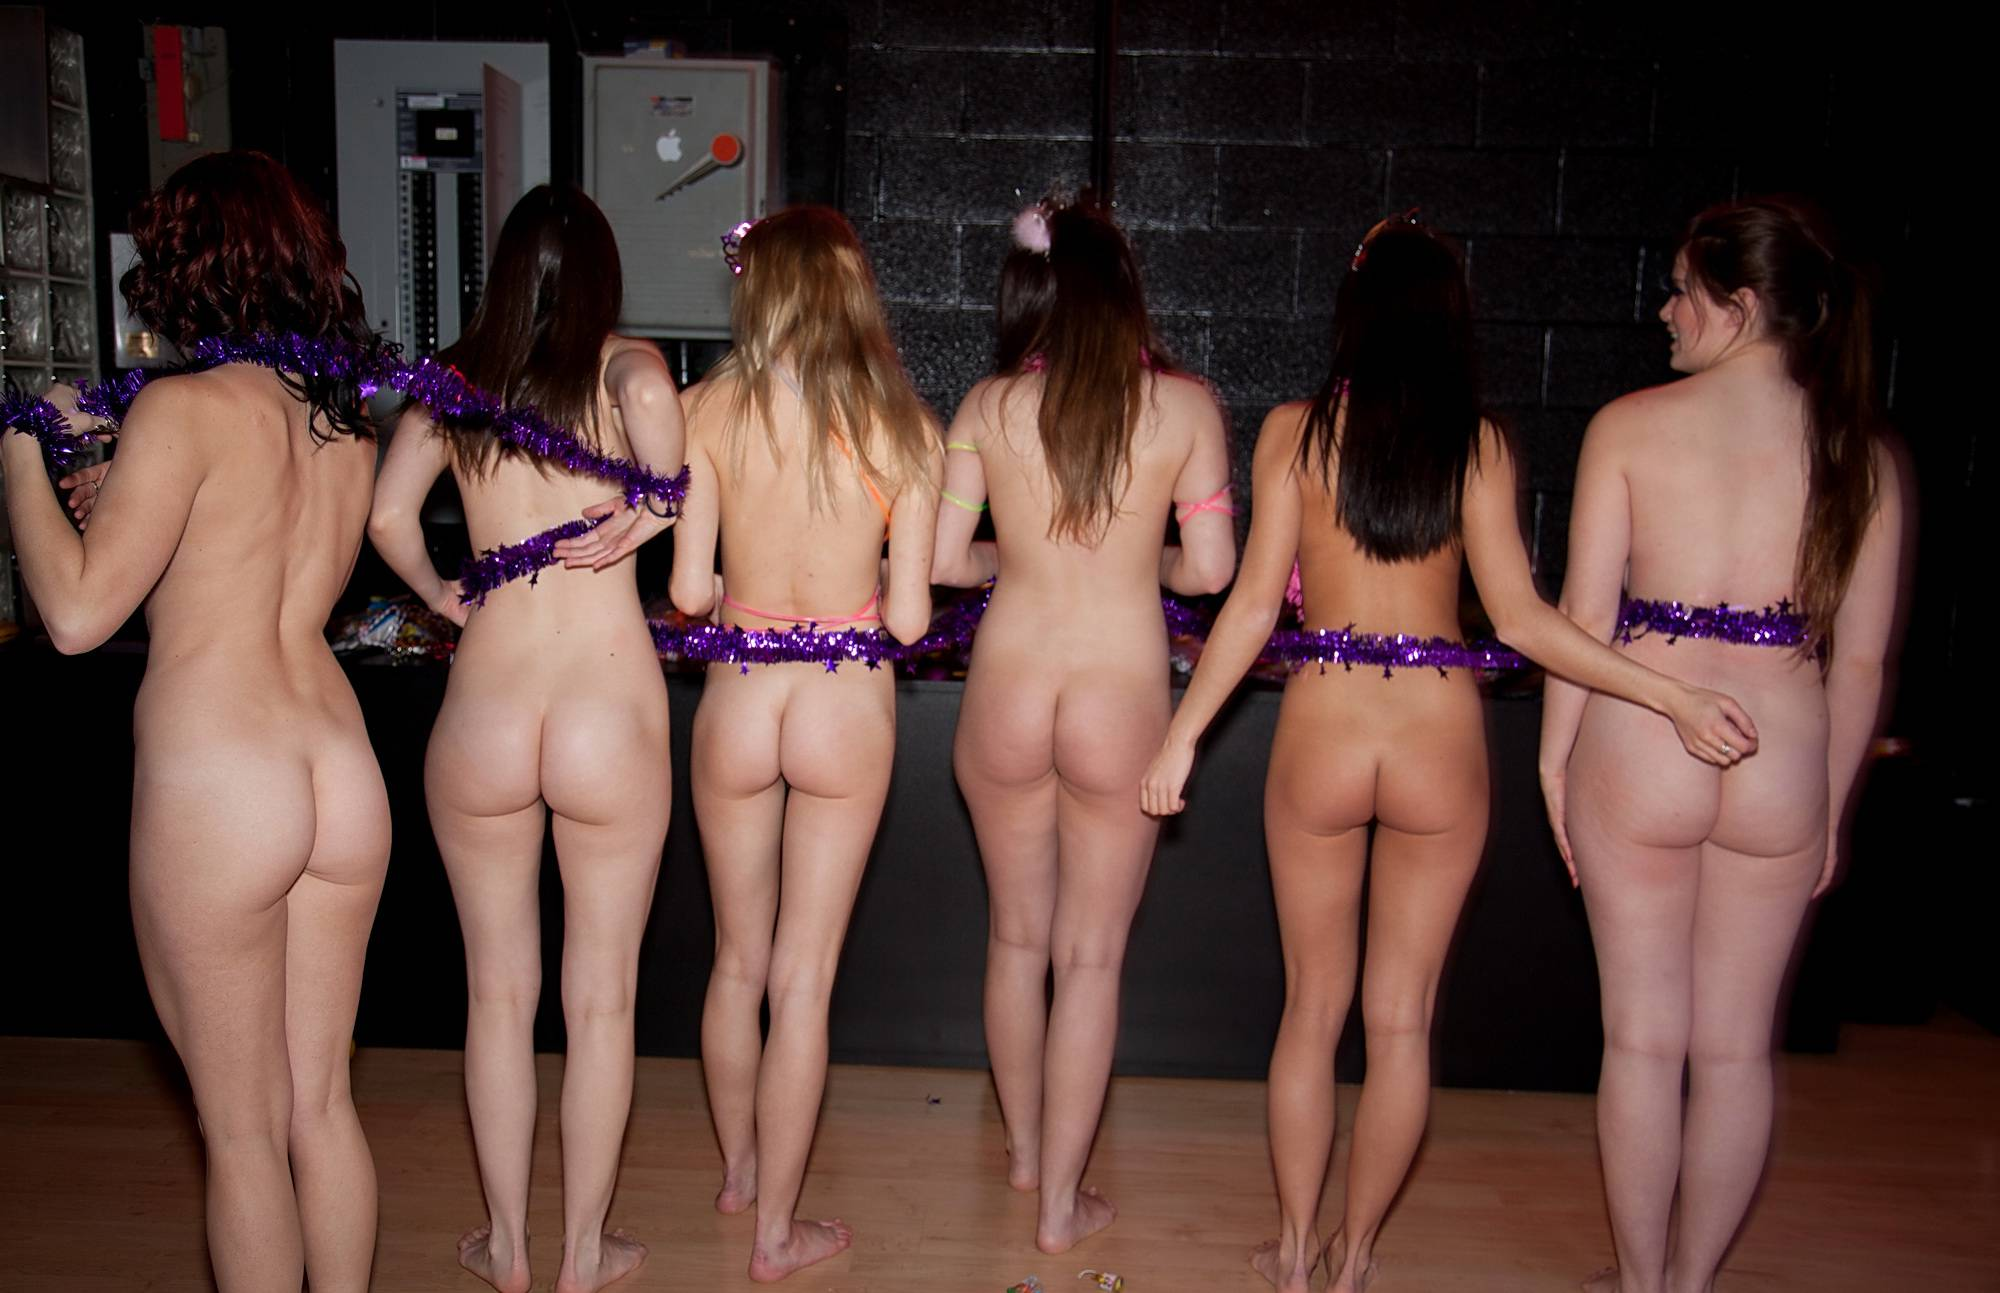 All Lined Up In A Row Now - 4